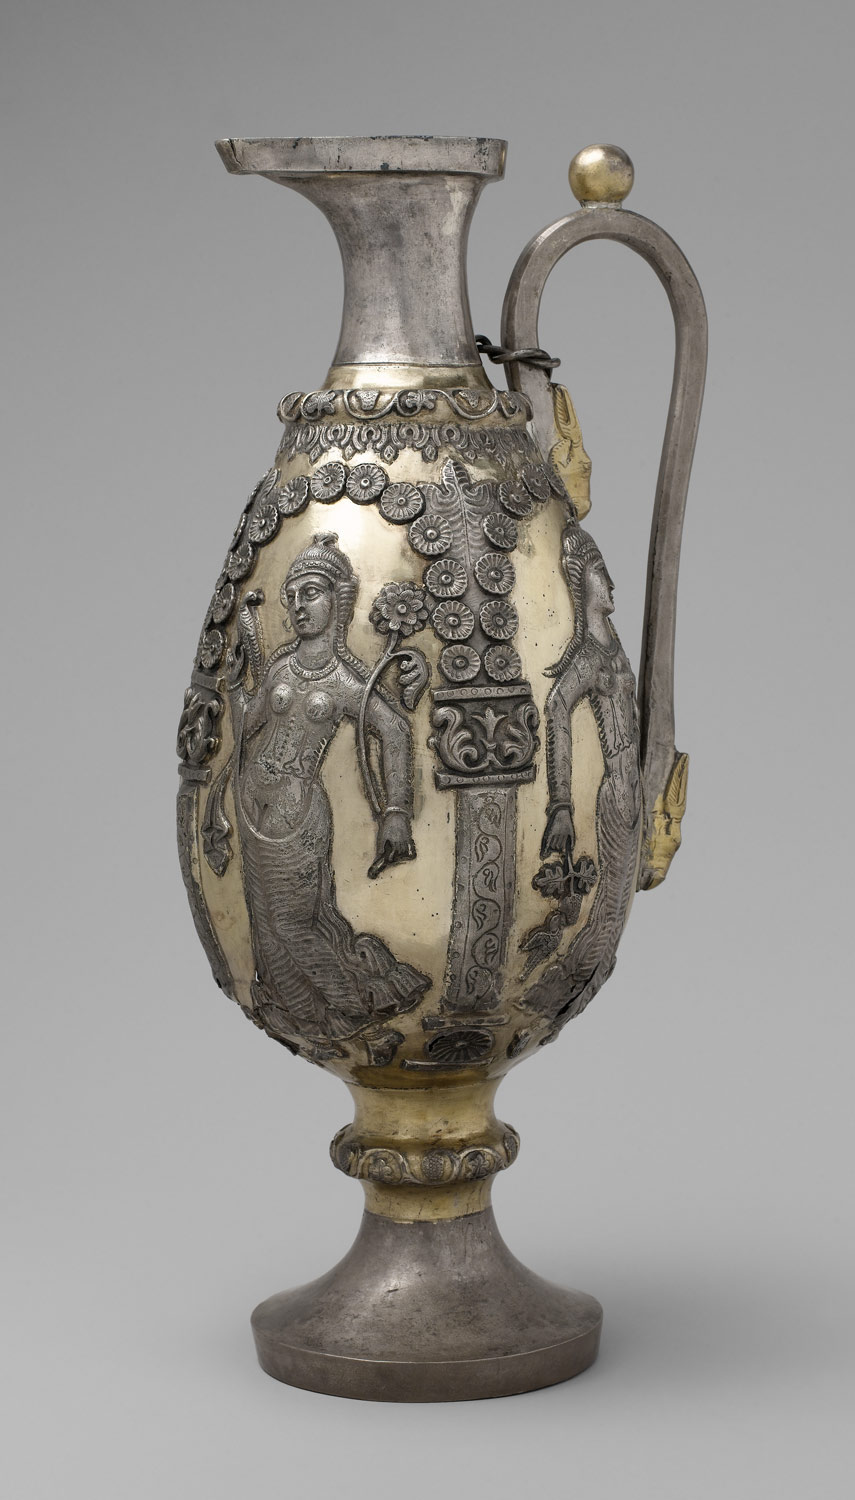 Ewer with dancing females within arcades